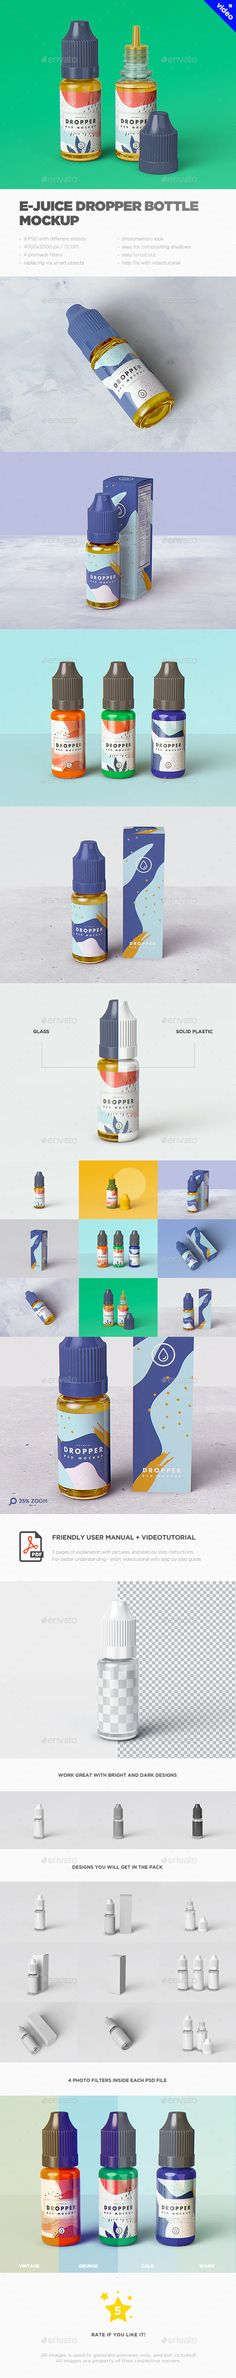 Buy E-Juice Dropper Bottle MockUp by on GraphicRiver. Check my other mockups: E-Juice Dropper Bottle MockUp is a pack of 9 PSD files, perfect for show – up your design. Mockup Templates, Design Templates, Bottle Mockup, User Interface, Presentation Templates, Your Design, Juice, Behance, Photoshop